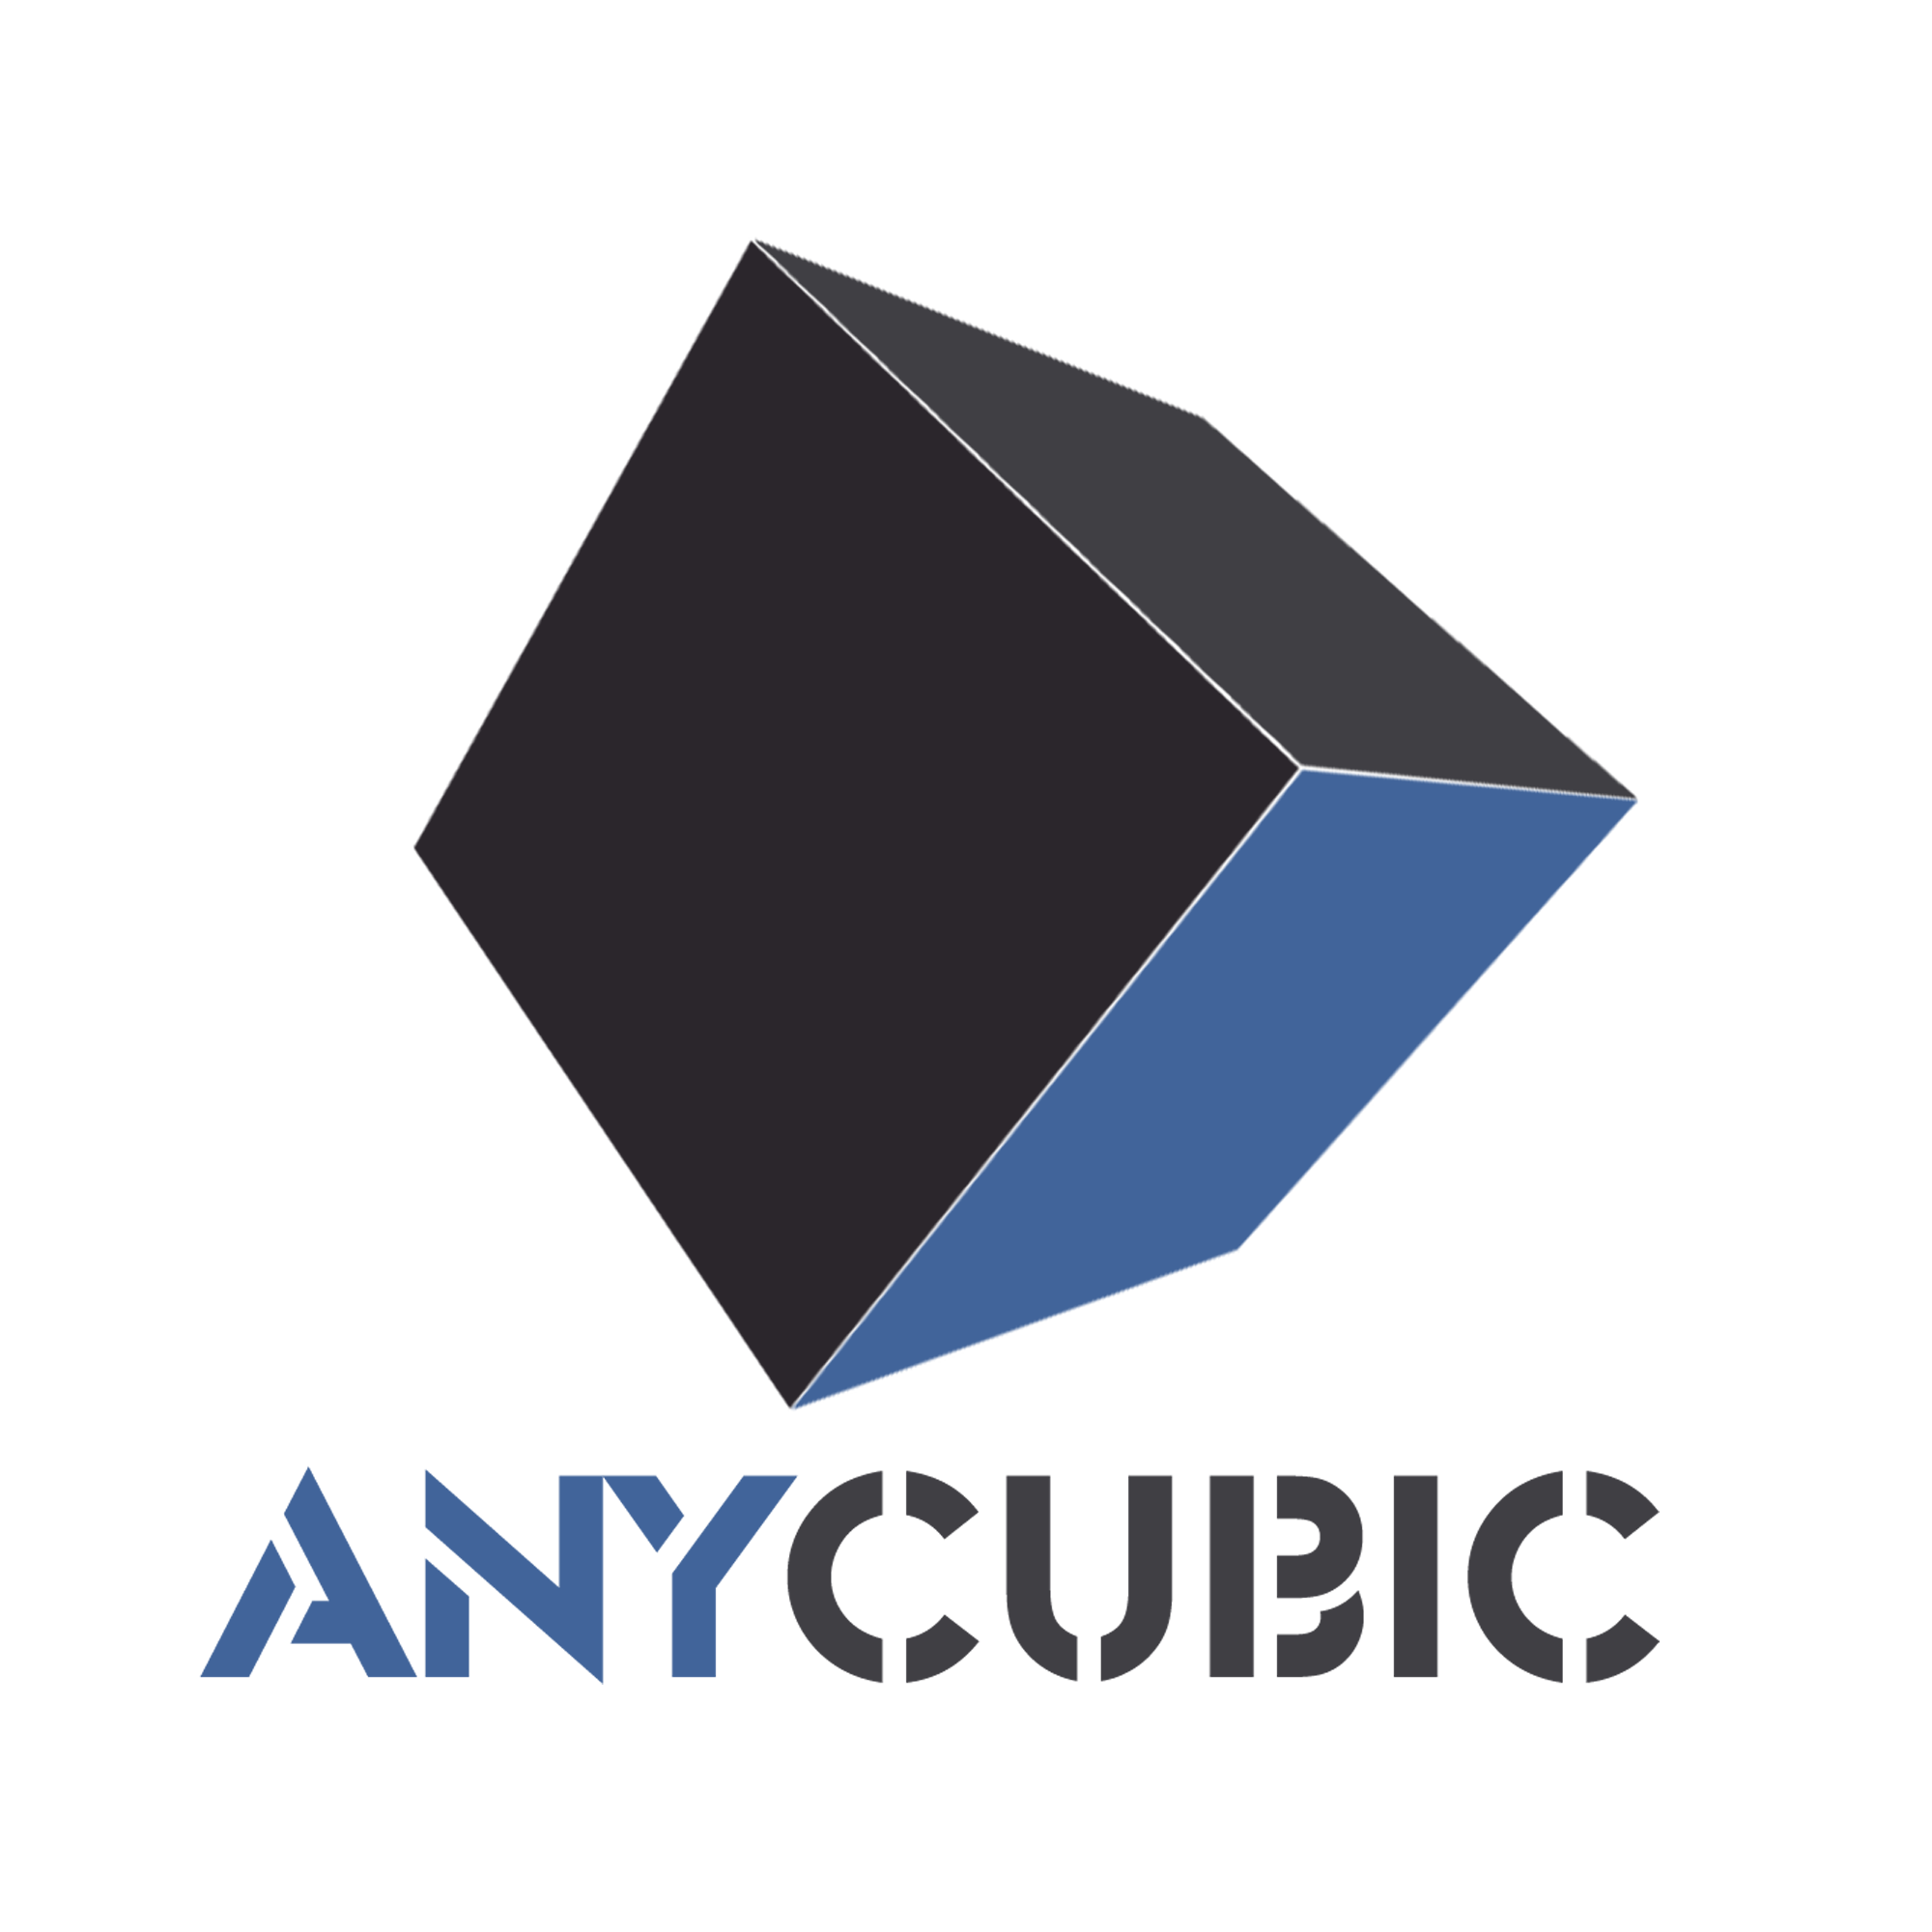 ANYCUBIC Anniversary Sale: $70 USD Discount on Photon S